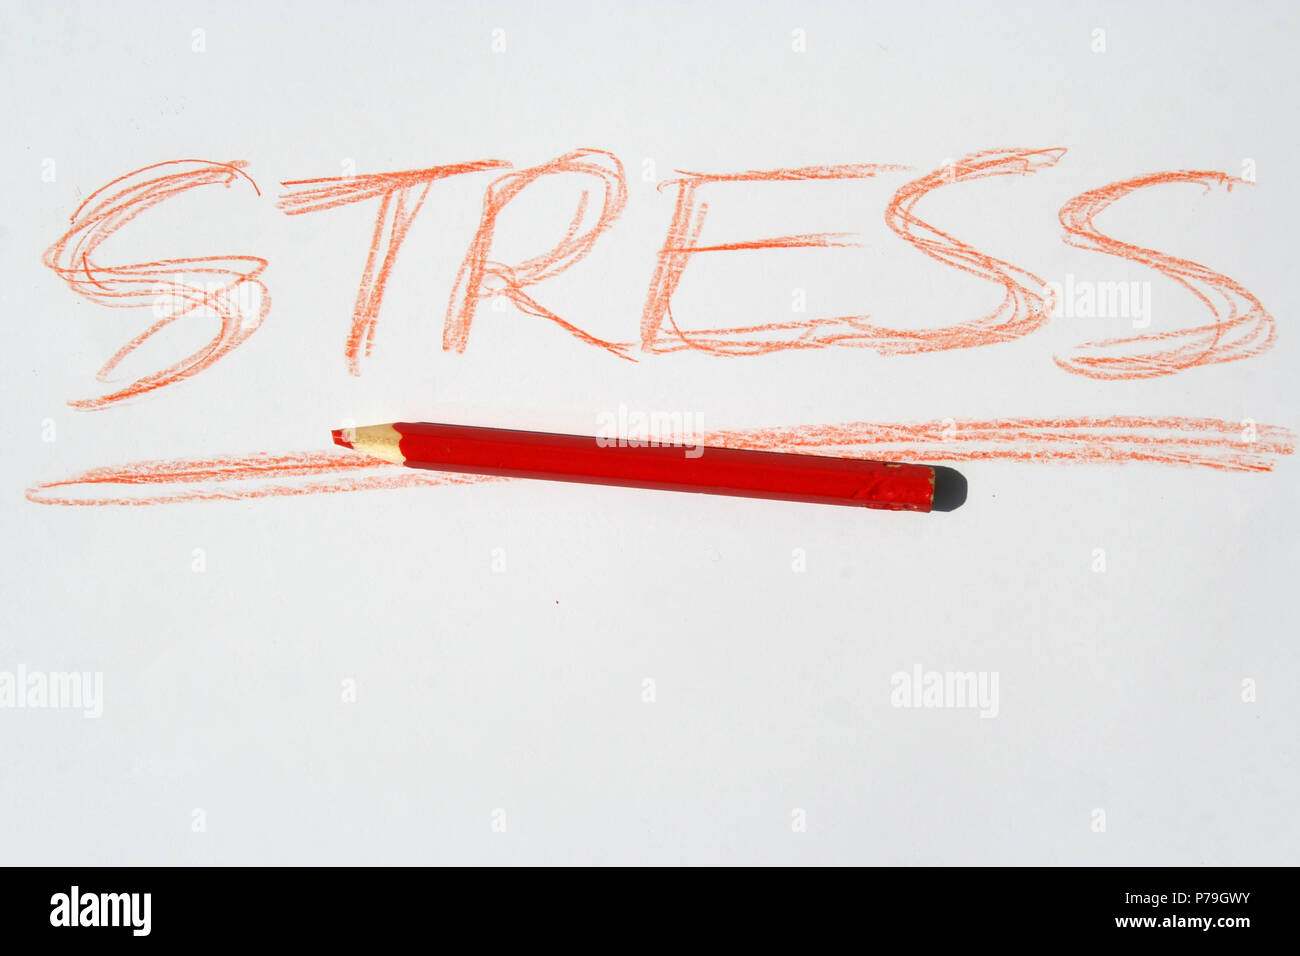 Stress note written with red crayon. - Stock Image